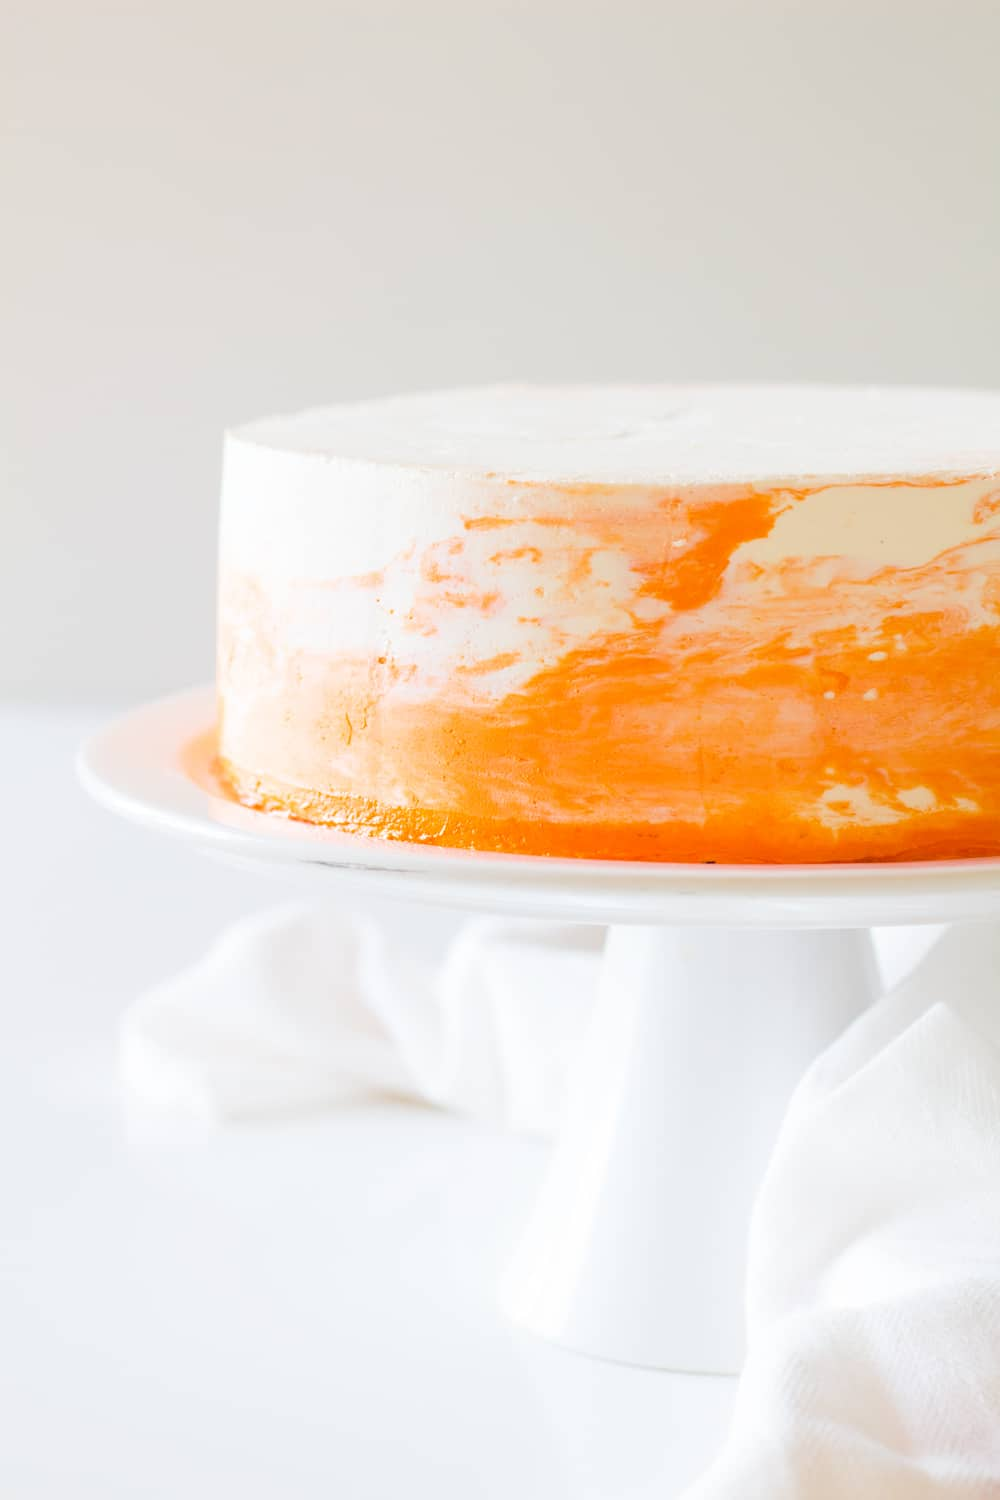 Vanilla cake with white and orange coconut cream frosting on a white cake stand.